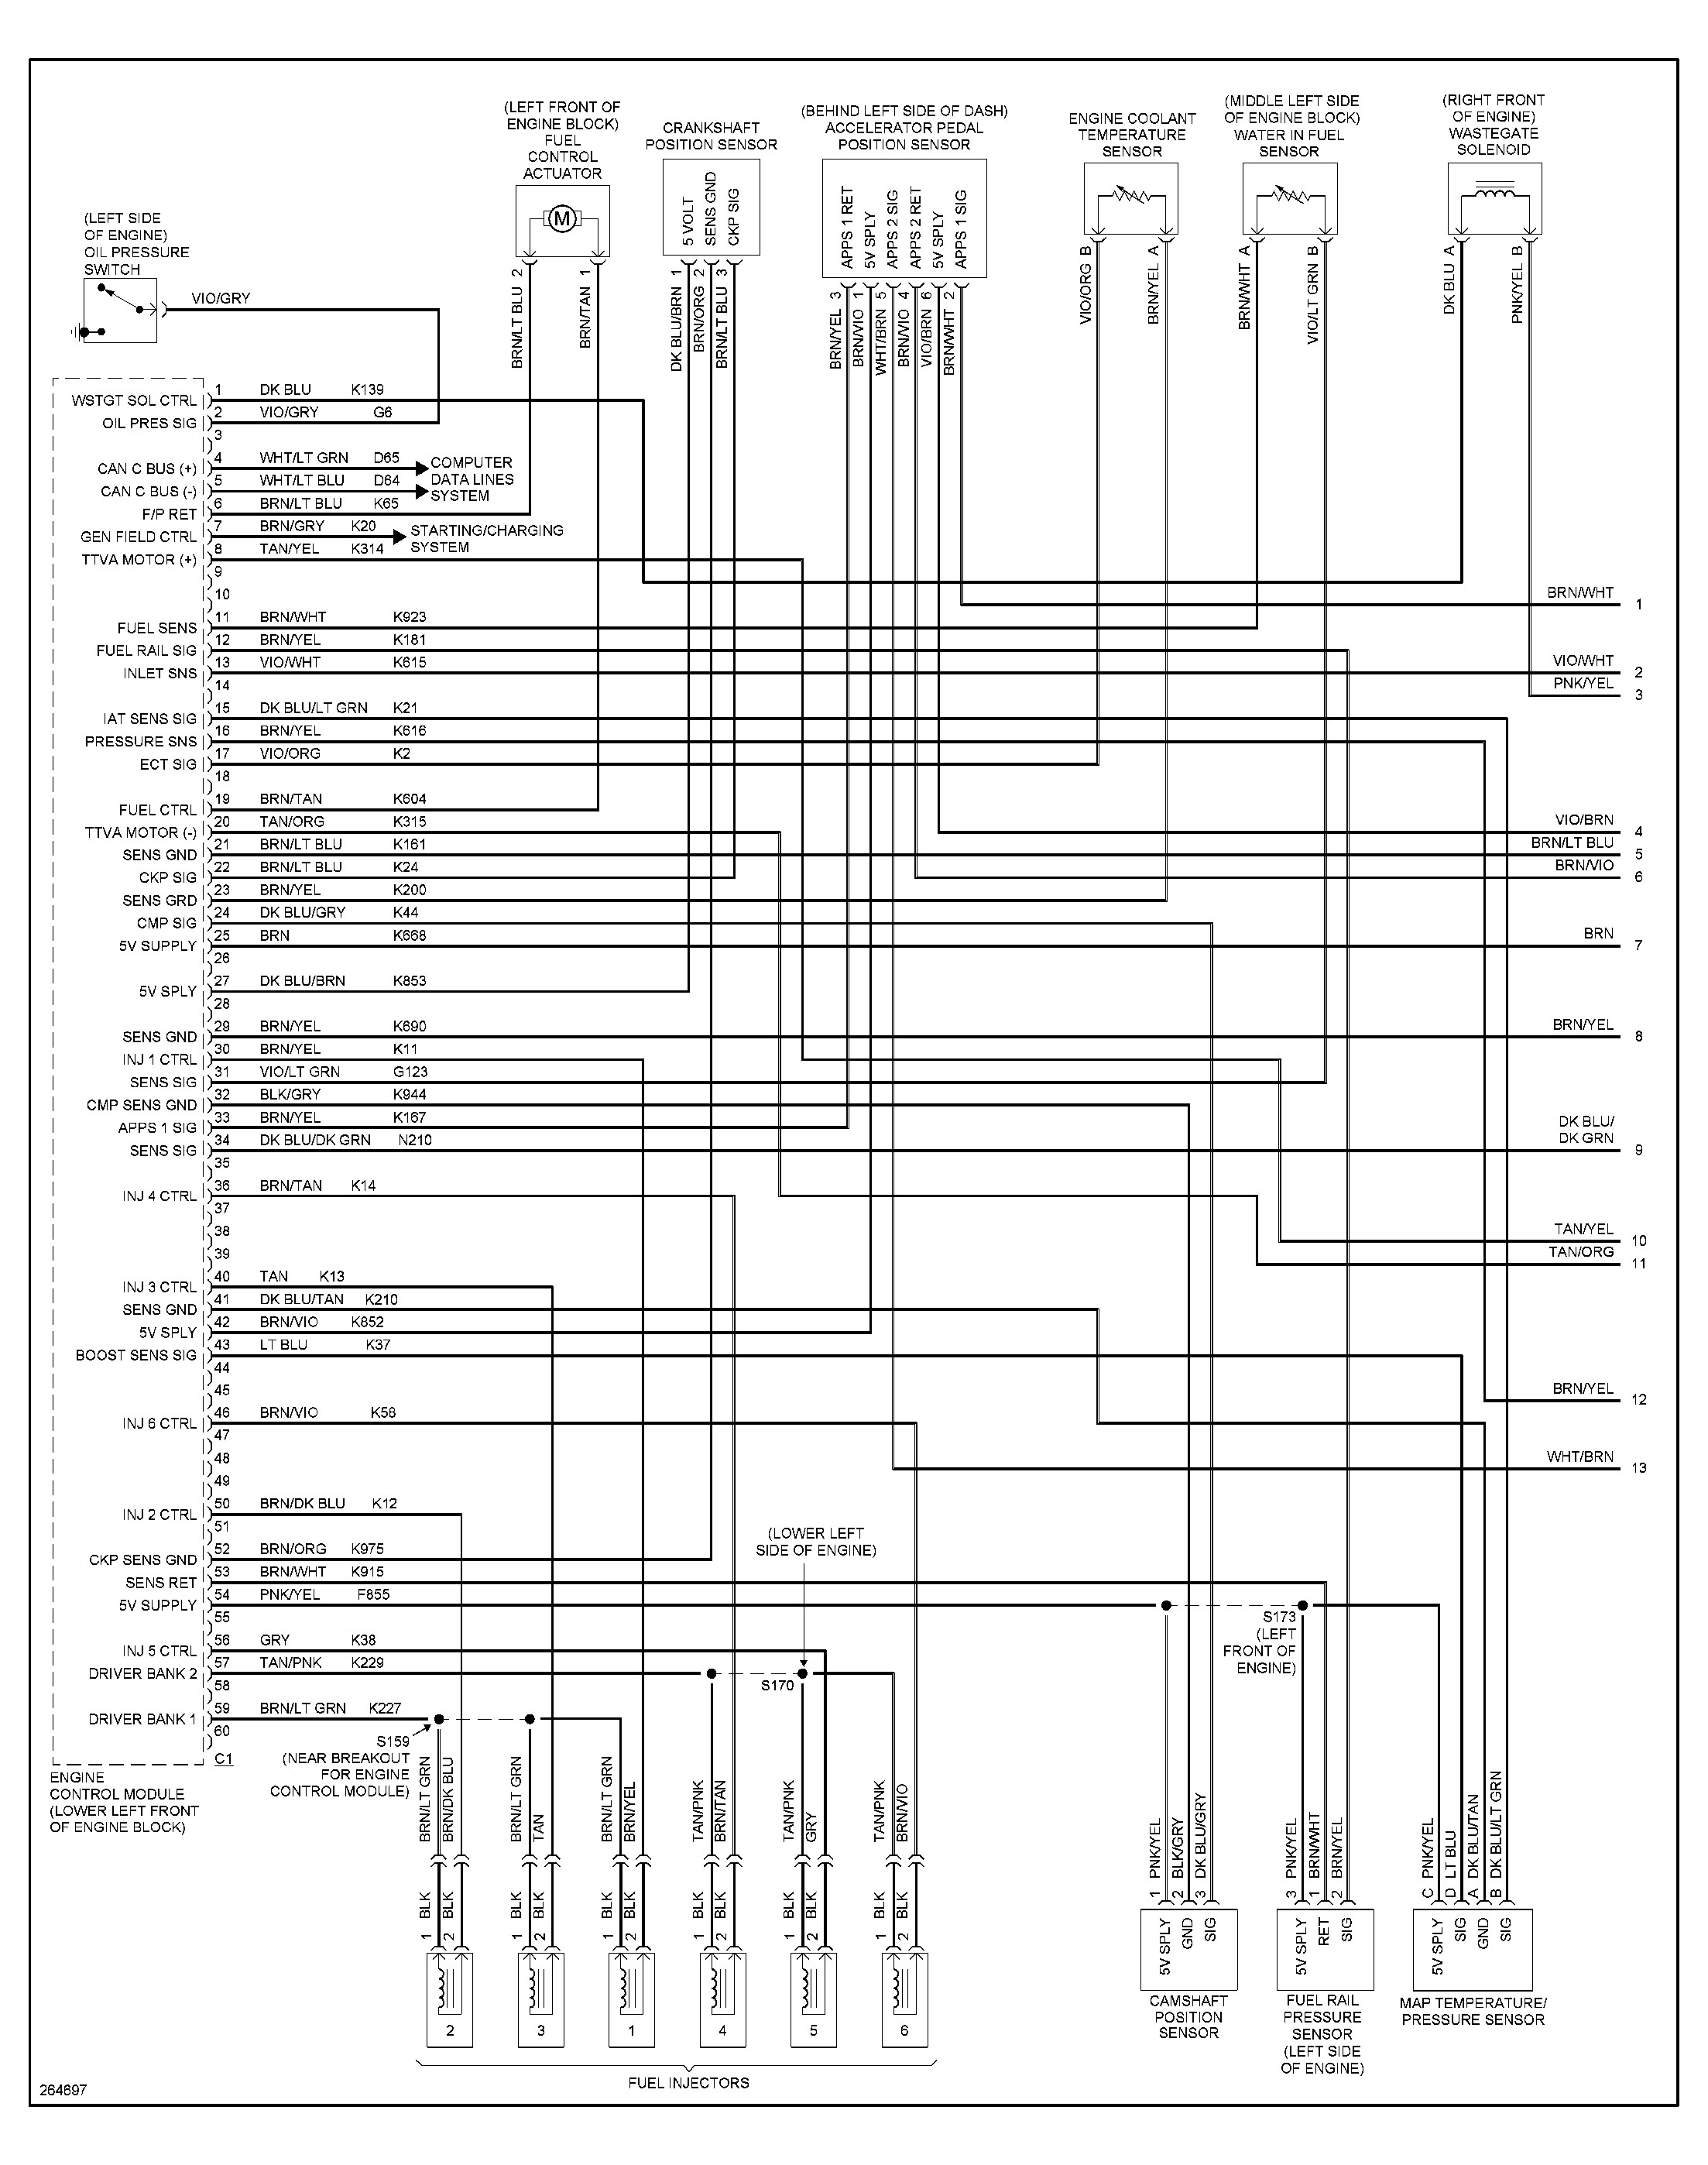 fuse box diagram for 2004 dodge ram 1500 2004 dodge ram 1500 wiring diagram | free wiring diagram